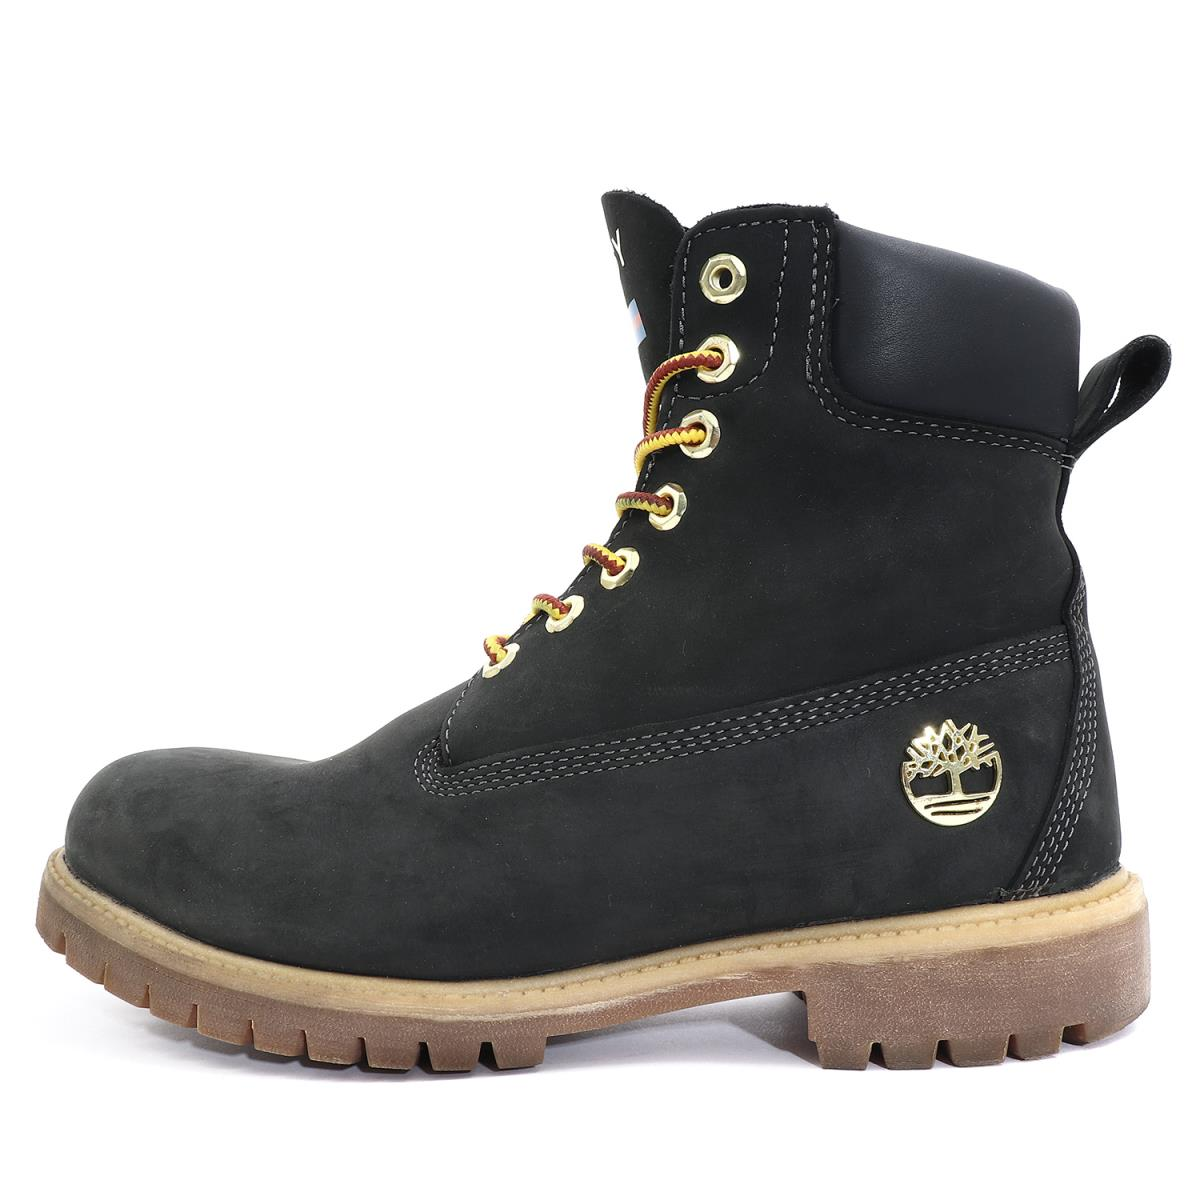 6e13f7e0aaeb BEEGLE by Boo-Bee  STUSSY (ステューシー) X Timberland 6 inches nubuck leather  boots (6 Boot) black US9(27cm)